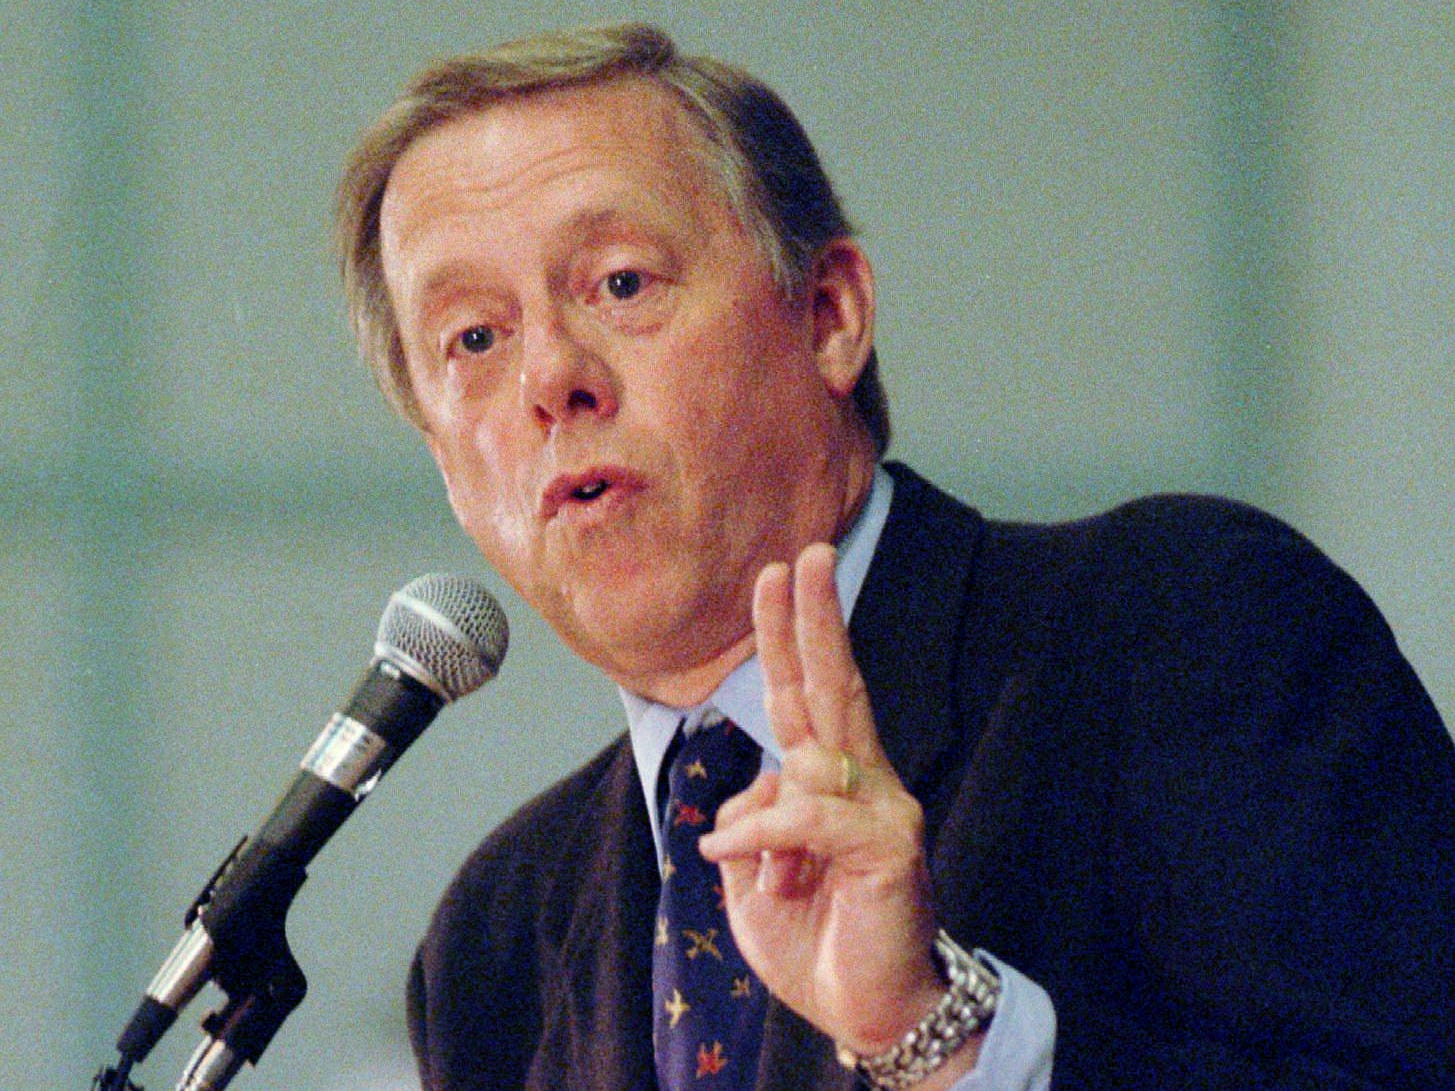 Metro Mayor Phil Bredesen explains the multimillion-dollar deal to bring the NFL Houston Oilers to Nashville during an appearance Oct. 24, 1995 at the Rotary Club of Knoxville, Tenn. Knoxville, home of the University of Tennessee Volunteers, is his first stop in a statewide campaign to win support for the state-backed deal.